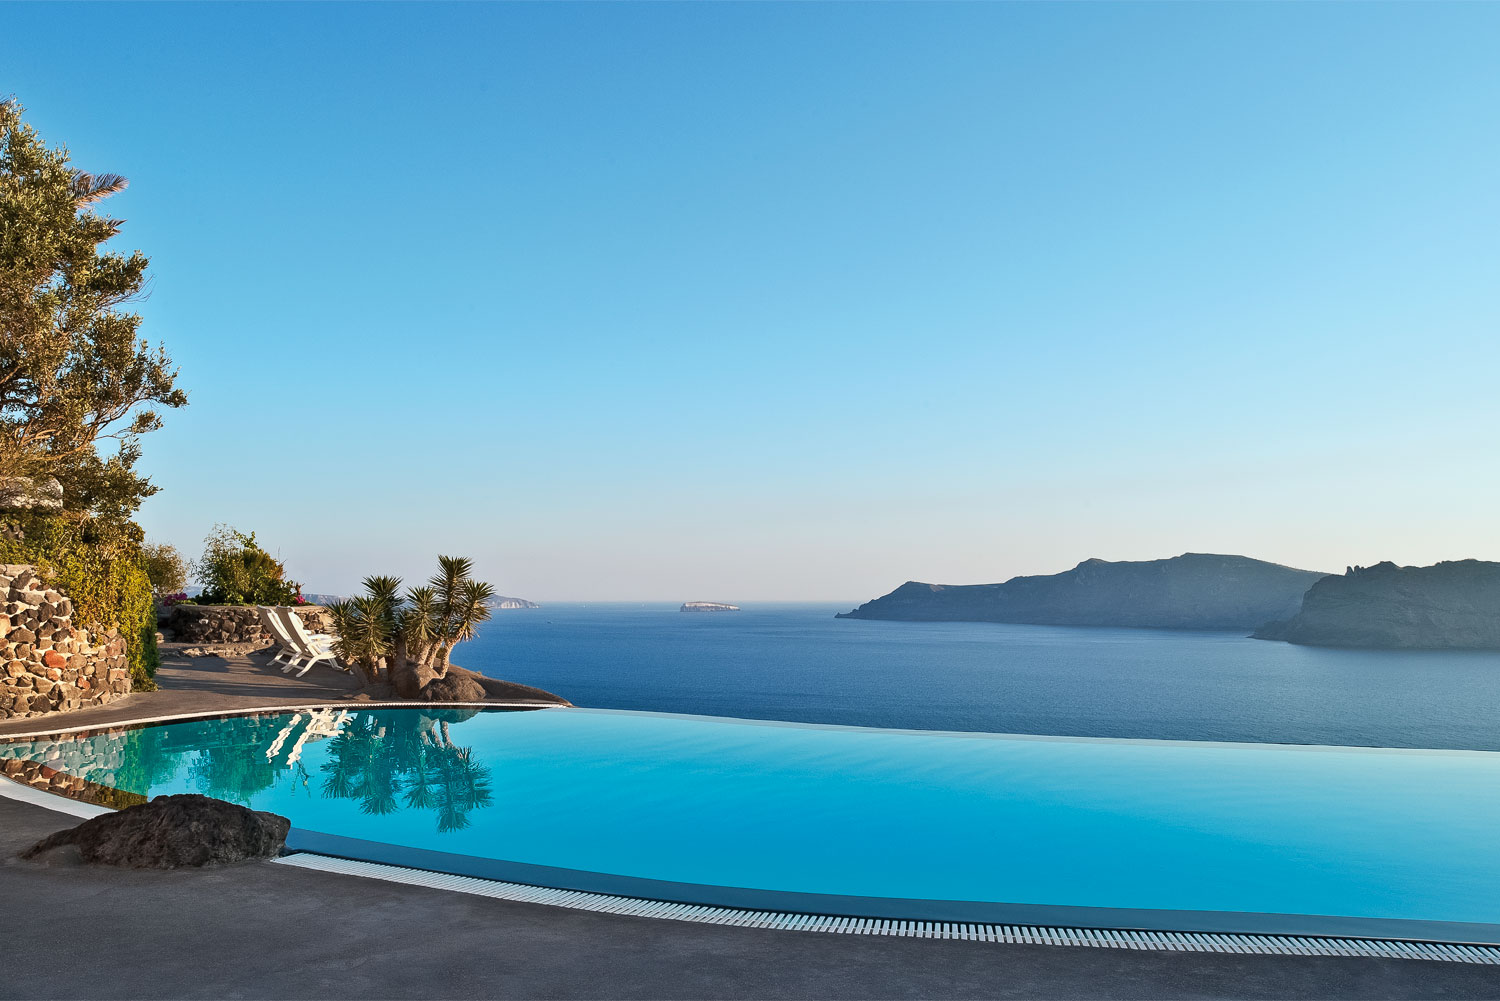 Perivolas Hotel pool in Santorini, Greece.